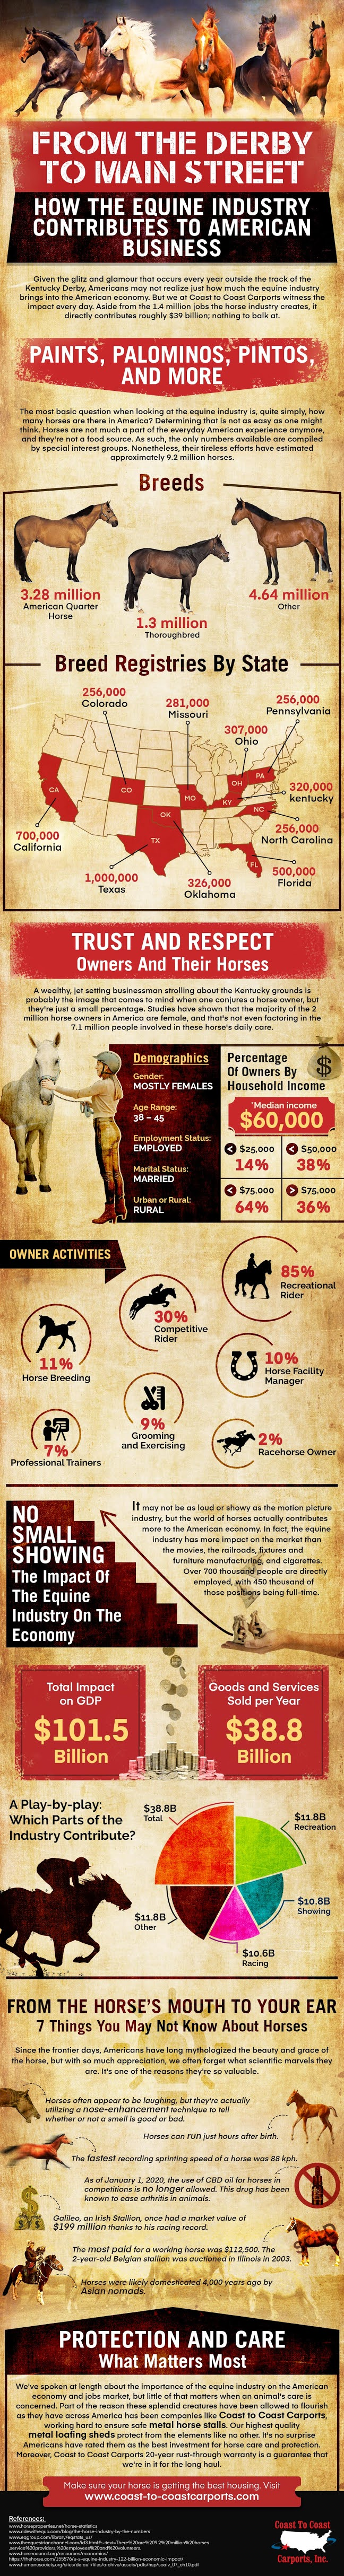 From the Derby to Main Street: How the Equine Industry Contributes to American Business #infographic #Animals #Business #infographics